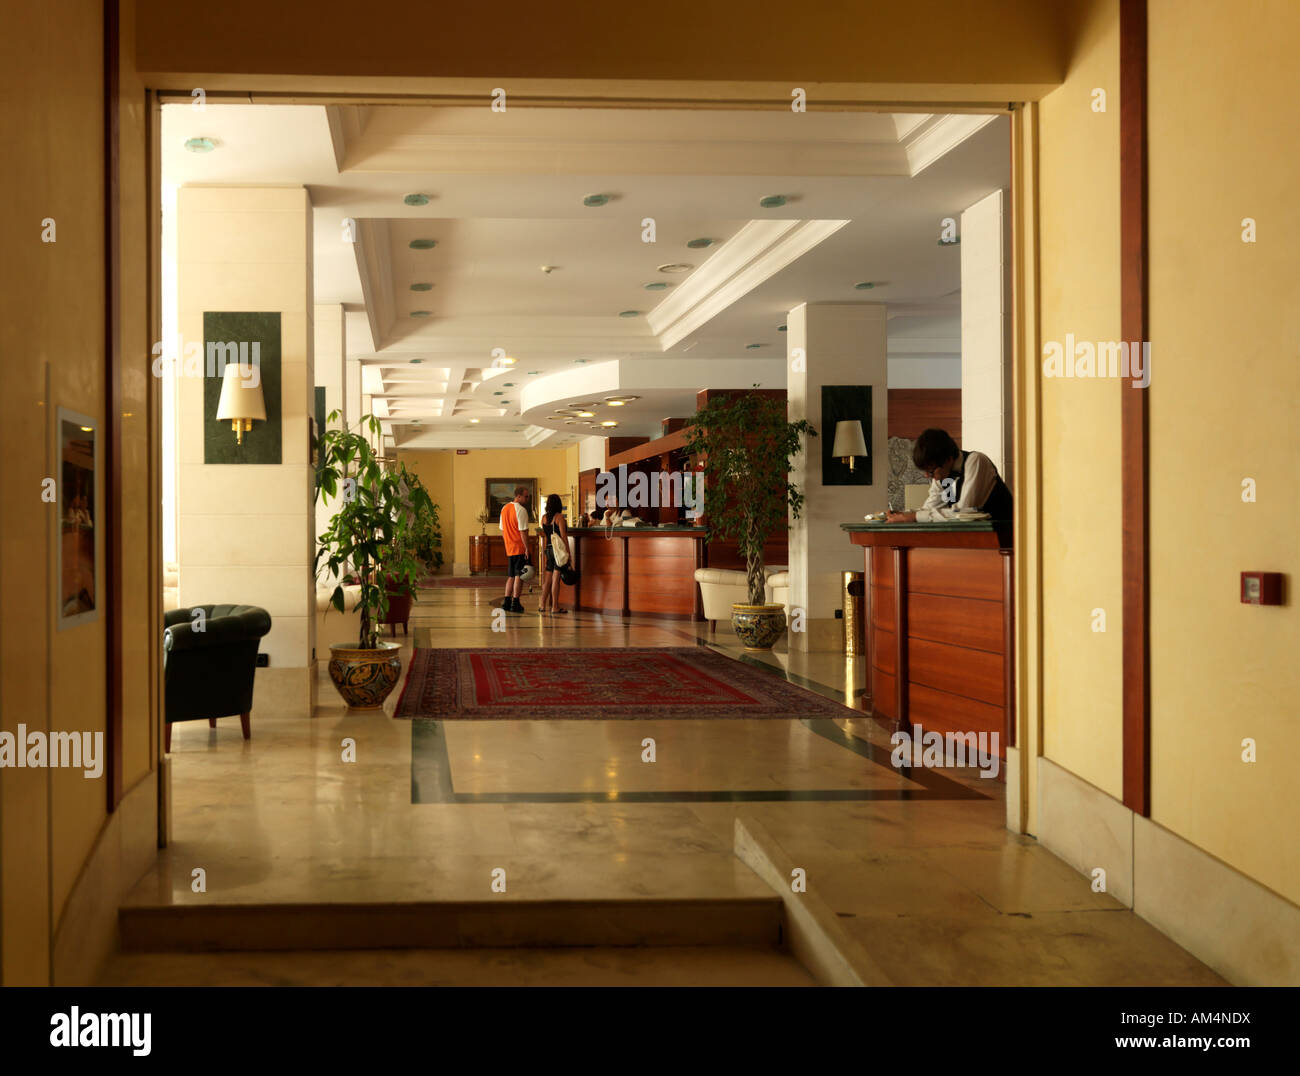 Foyer Hotel : Hotel foyer stock photos & images alamy